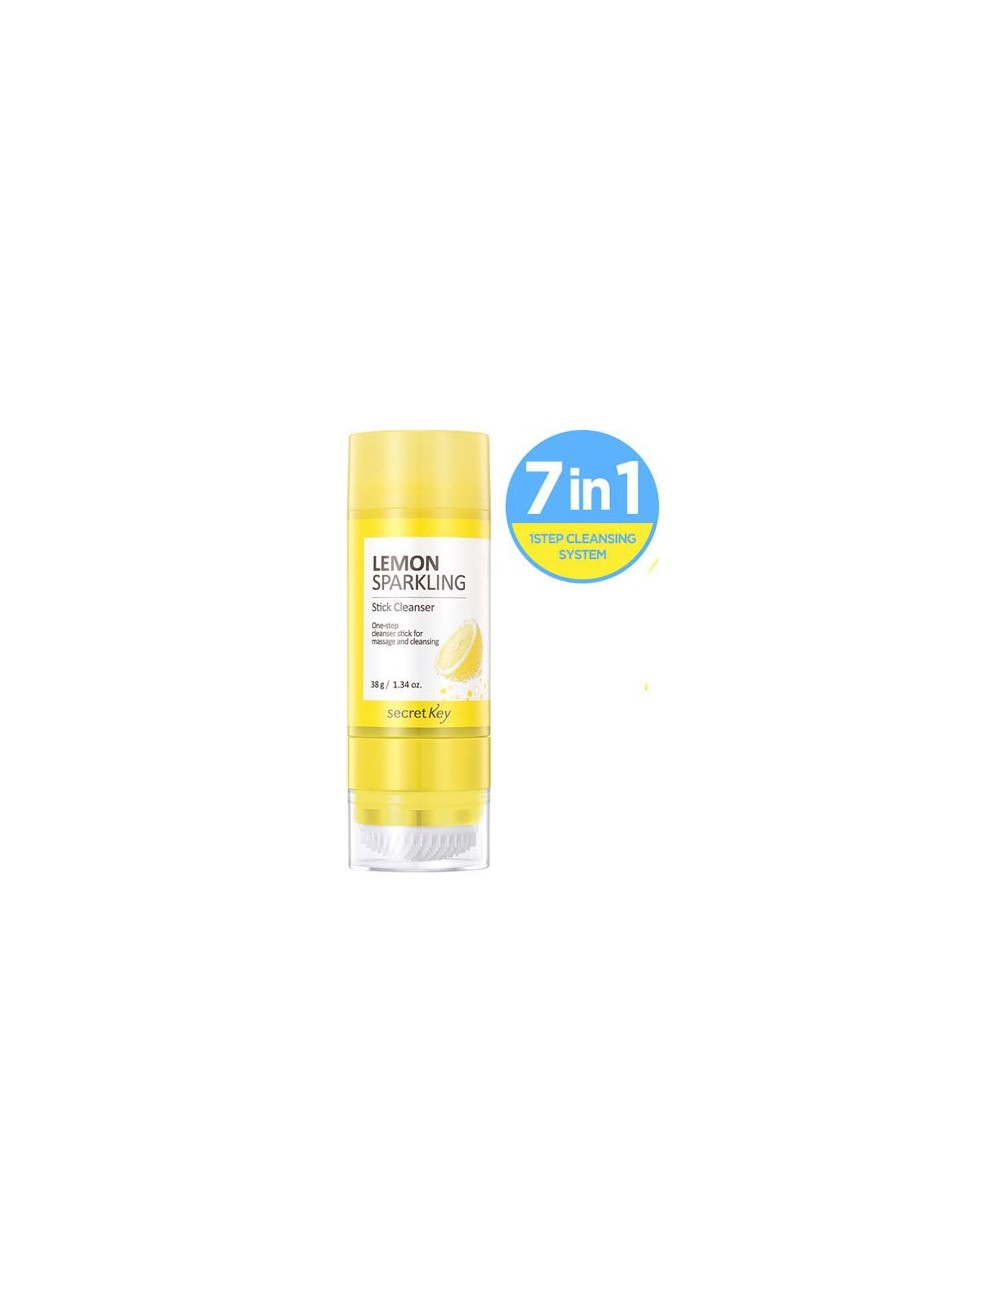 Bálsamo Desmaquillante Secret Key Lemon Sparkling Stick Cleanser